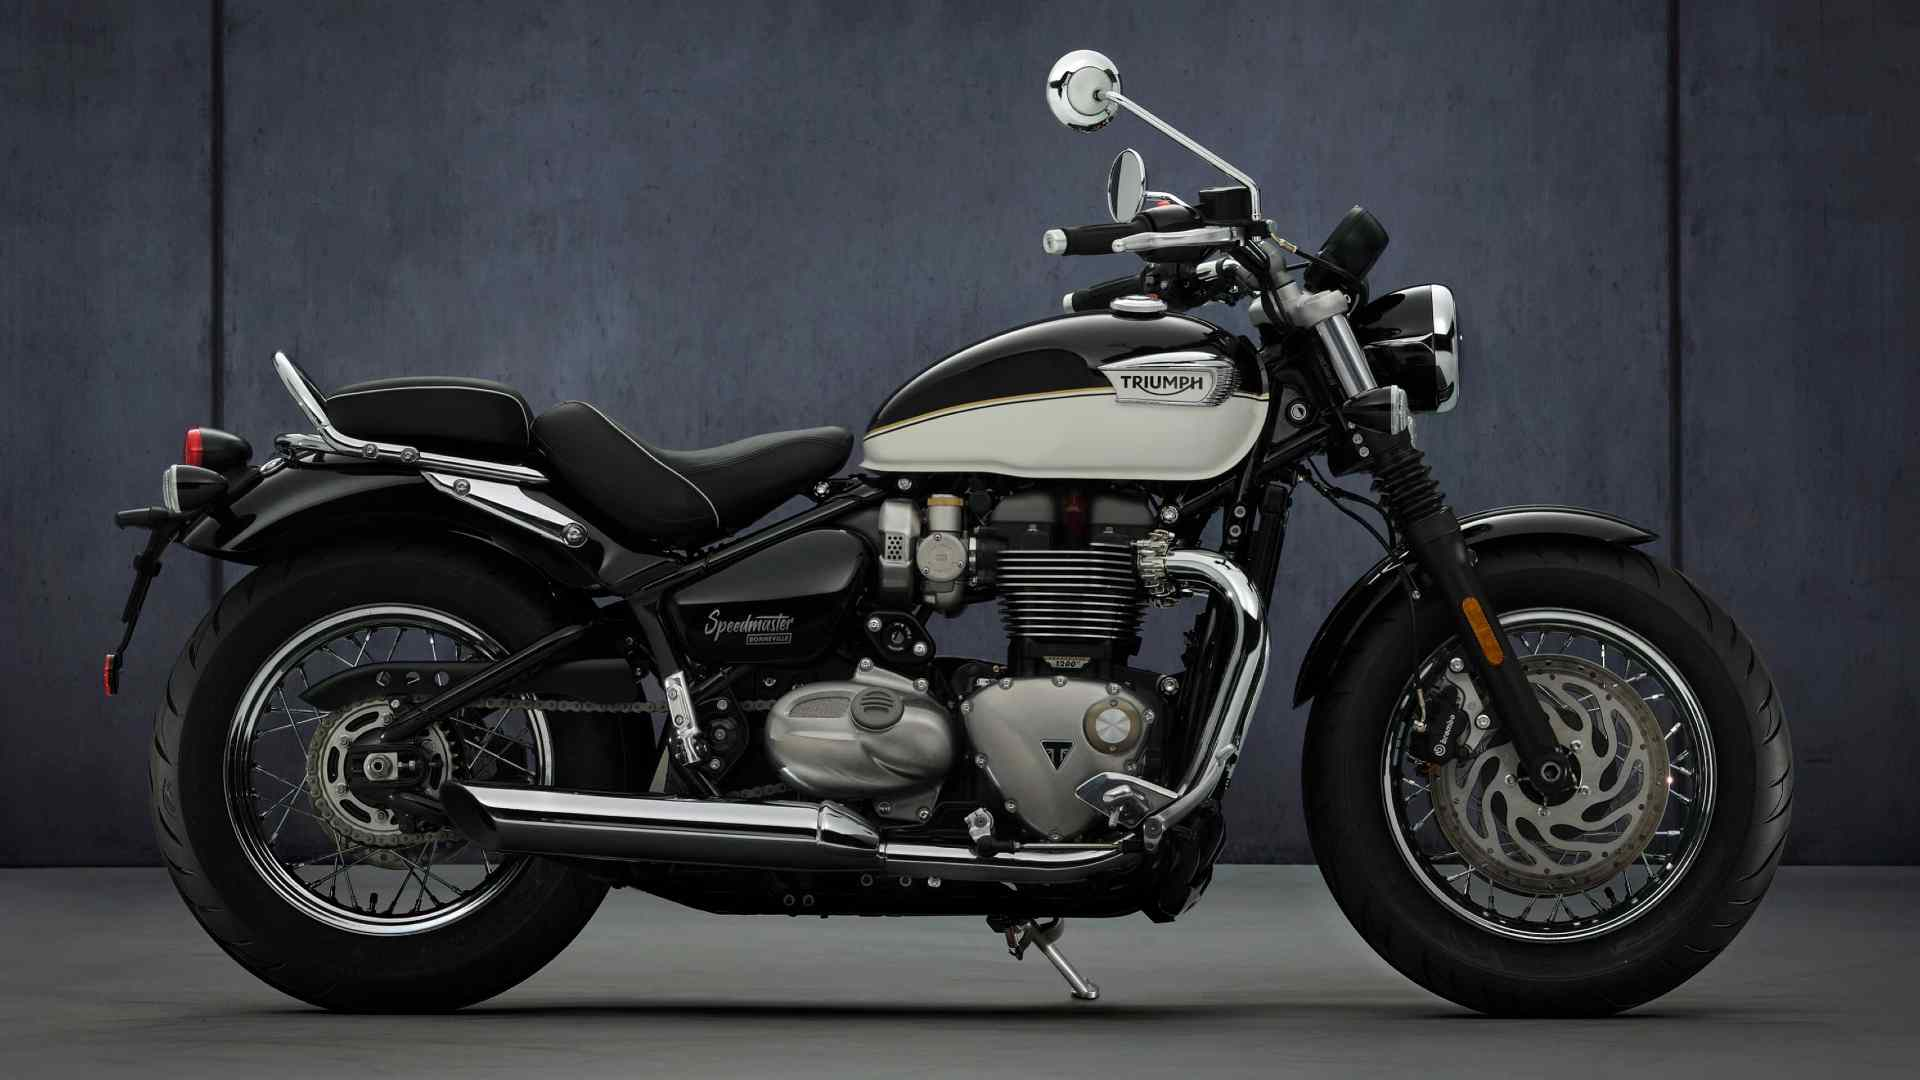 New for the 2021 Triumph Speedmaster are a fatter 47mm Showa fork and 'comfort' seats. Image: Triumph Motorcycles